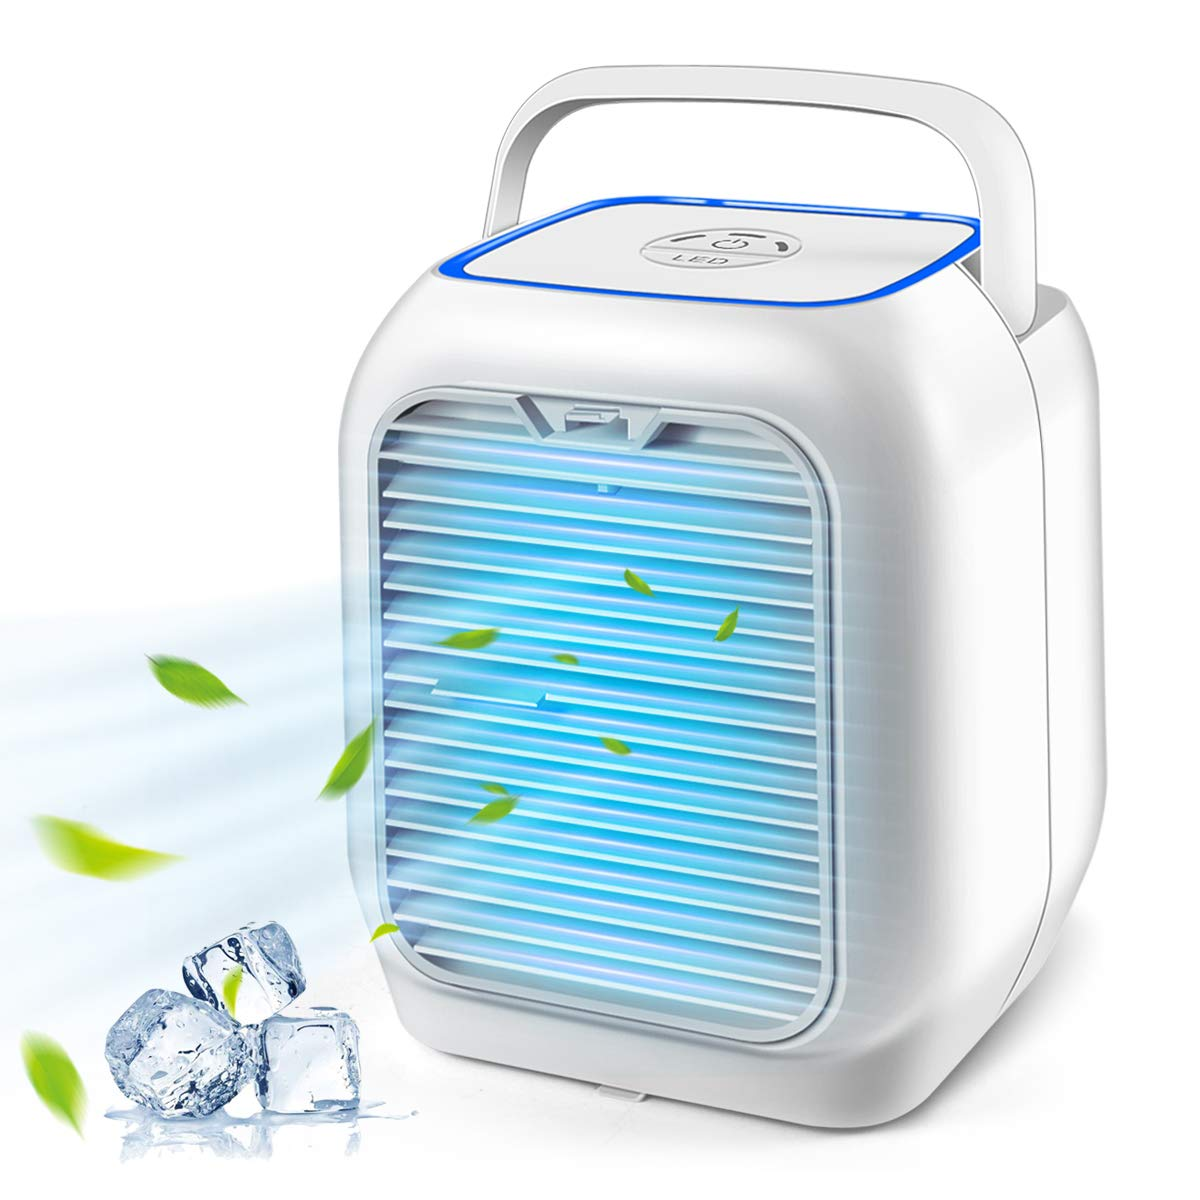 Personal Air Conditioner Fan, Cakie Air Personal Space Cooler Small Desktop Fan Quiet Personal Table Fan Mini Evaporative Air Circulator Cooler Humidifier Bladeless Quiet for Office, Dorm, Room, Outdo